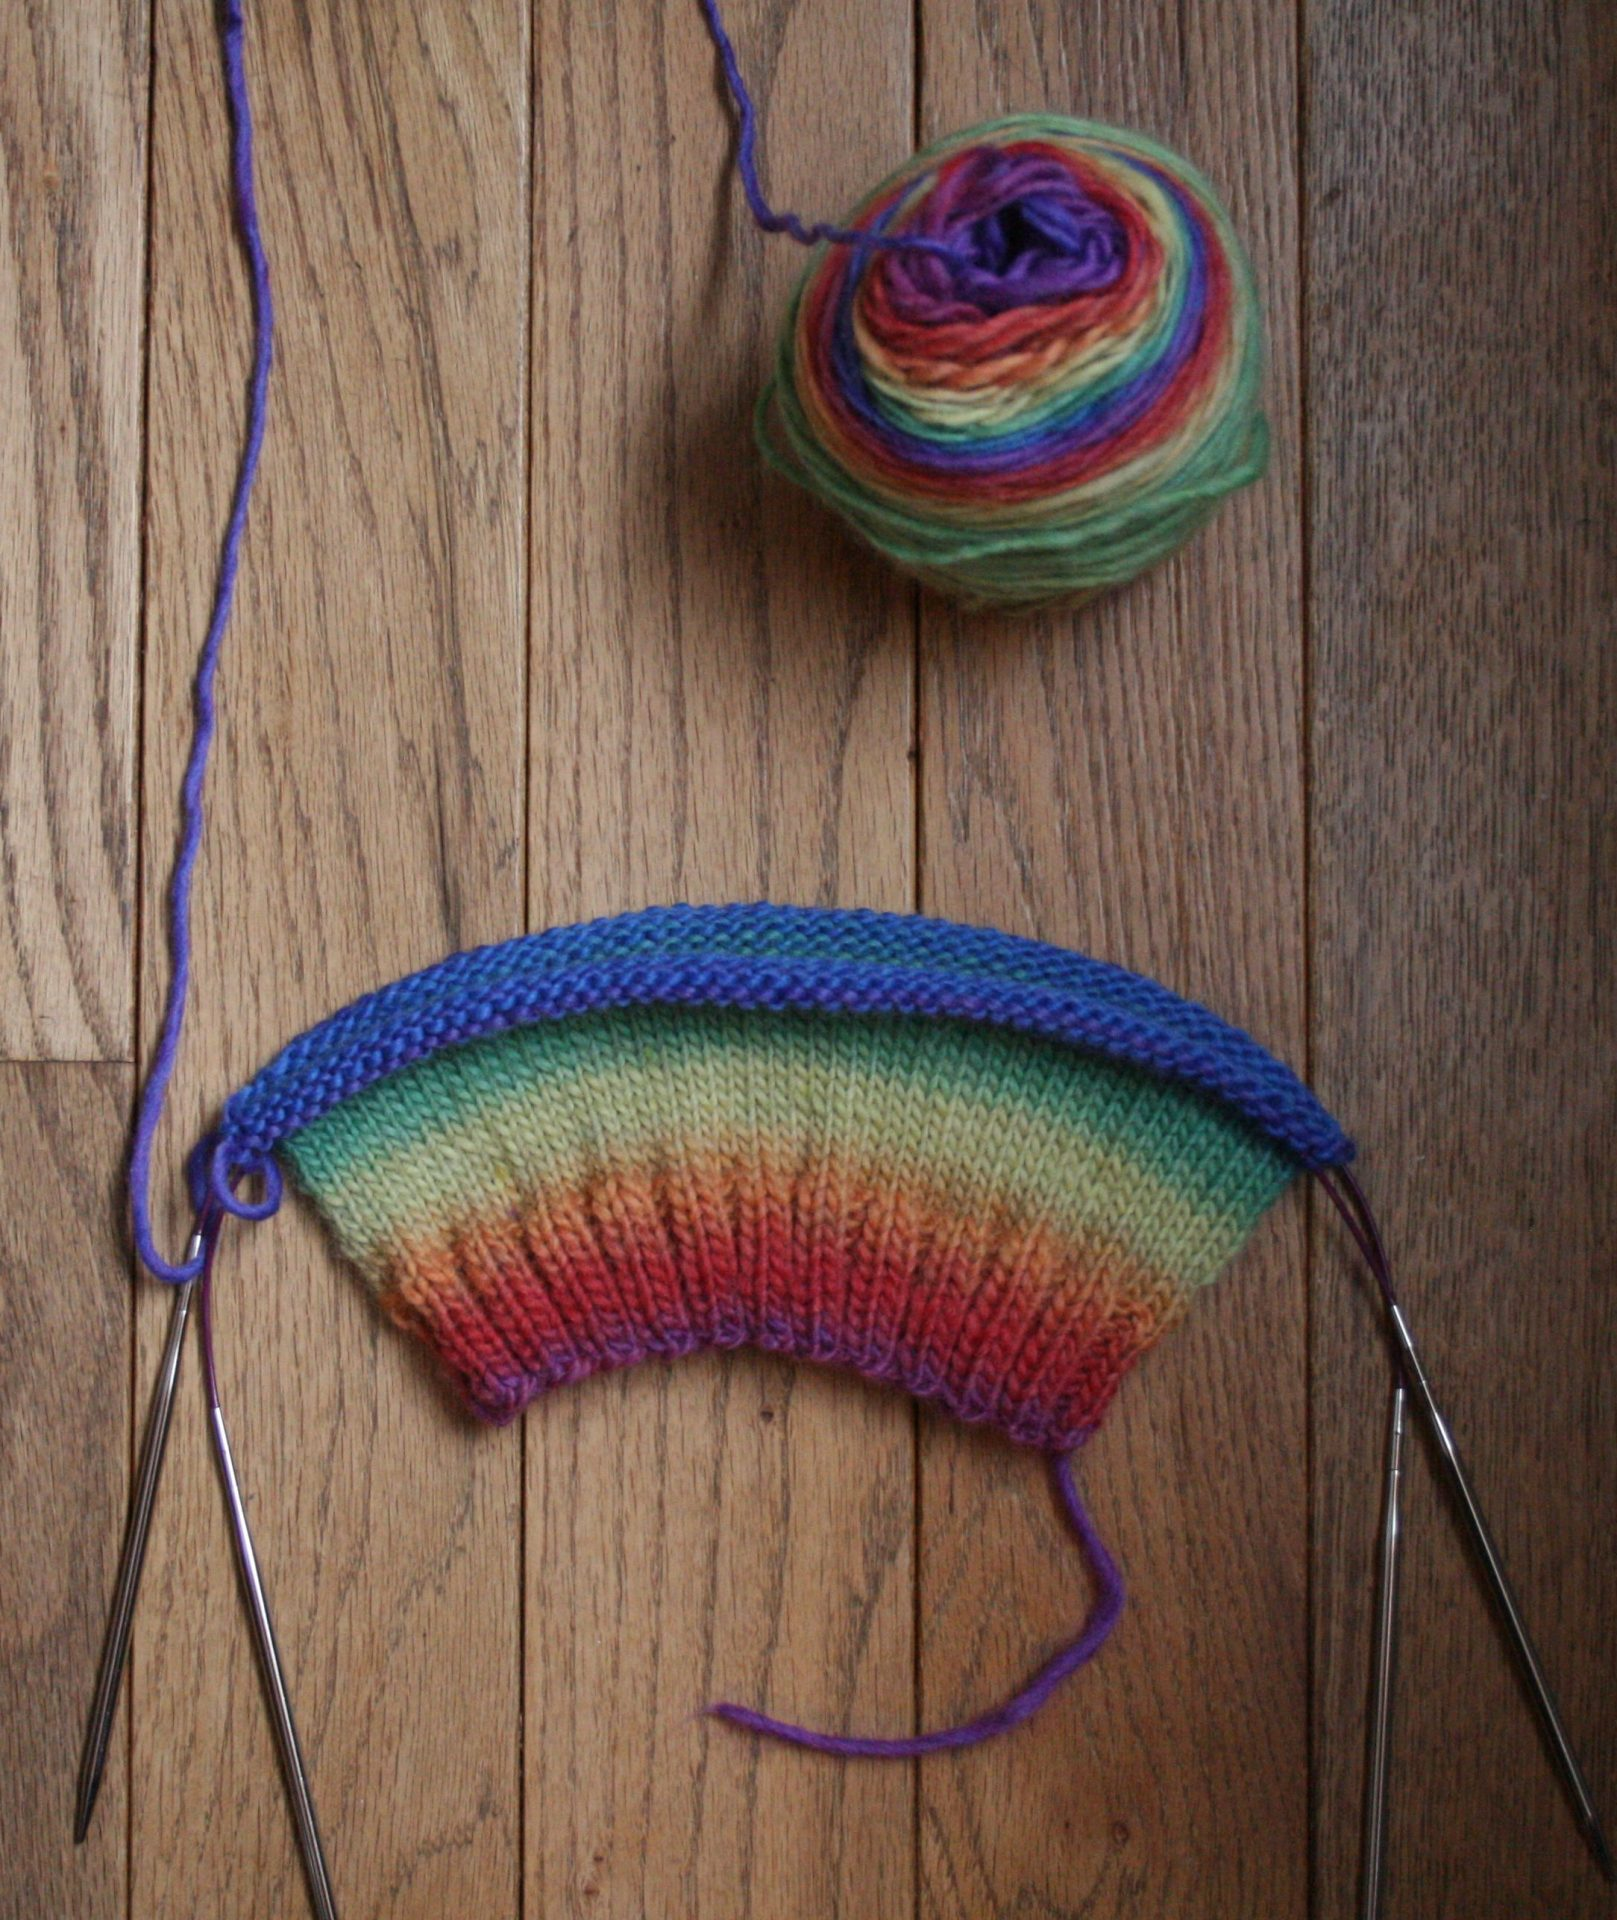 Photo of rainbow earflap hatting being knit.